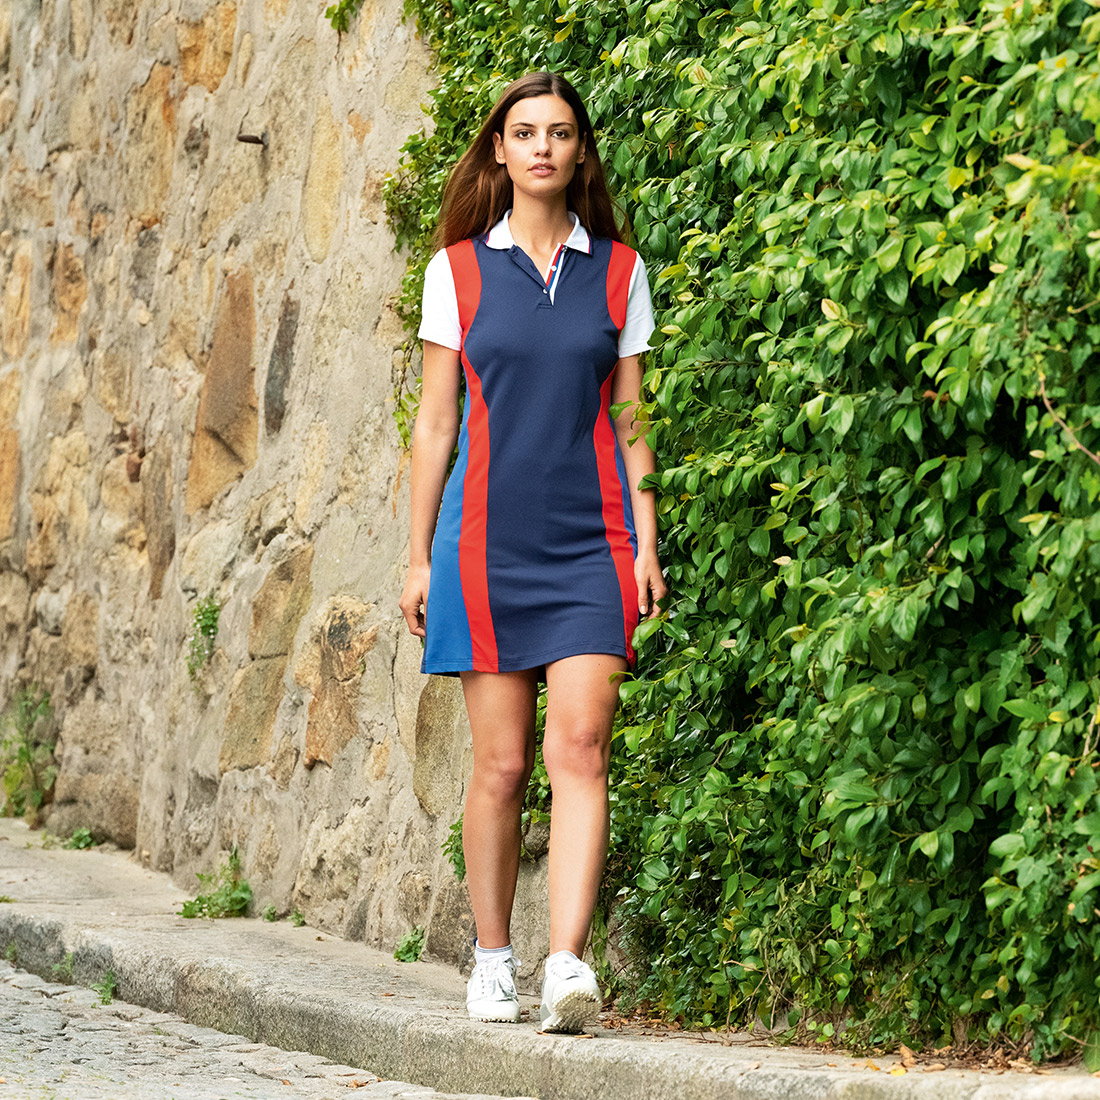 Golf dress Retro Sport